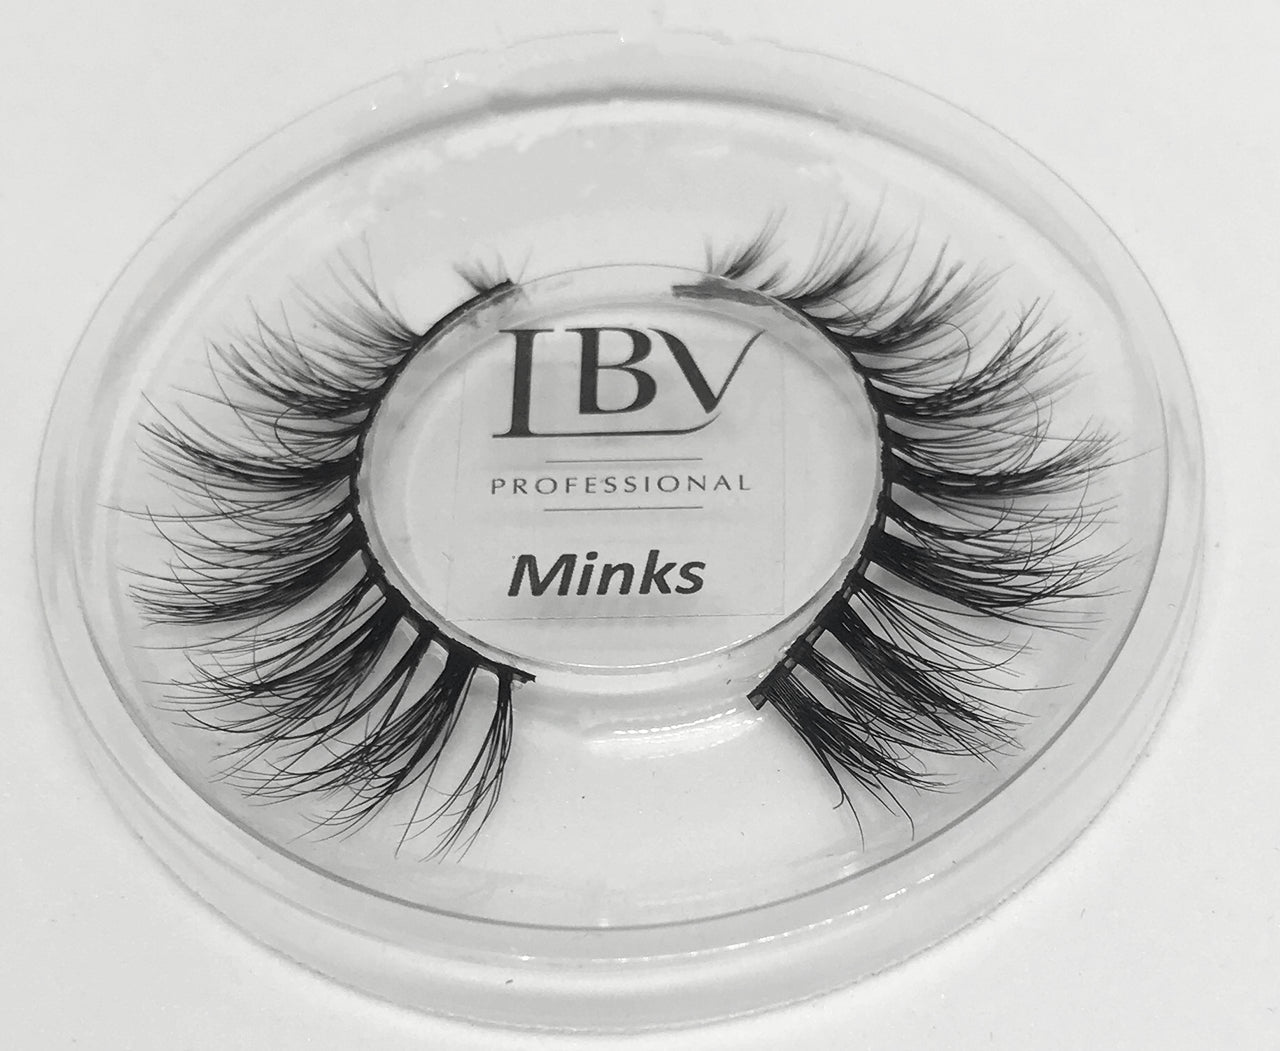 LBV PROFESSIONAL 3D Faux Minks